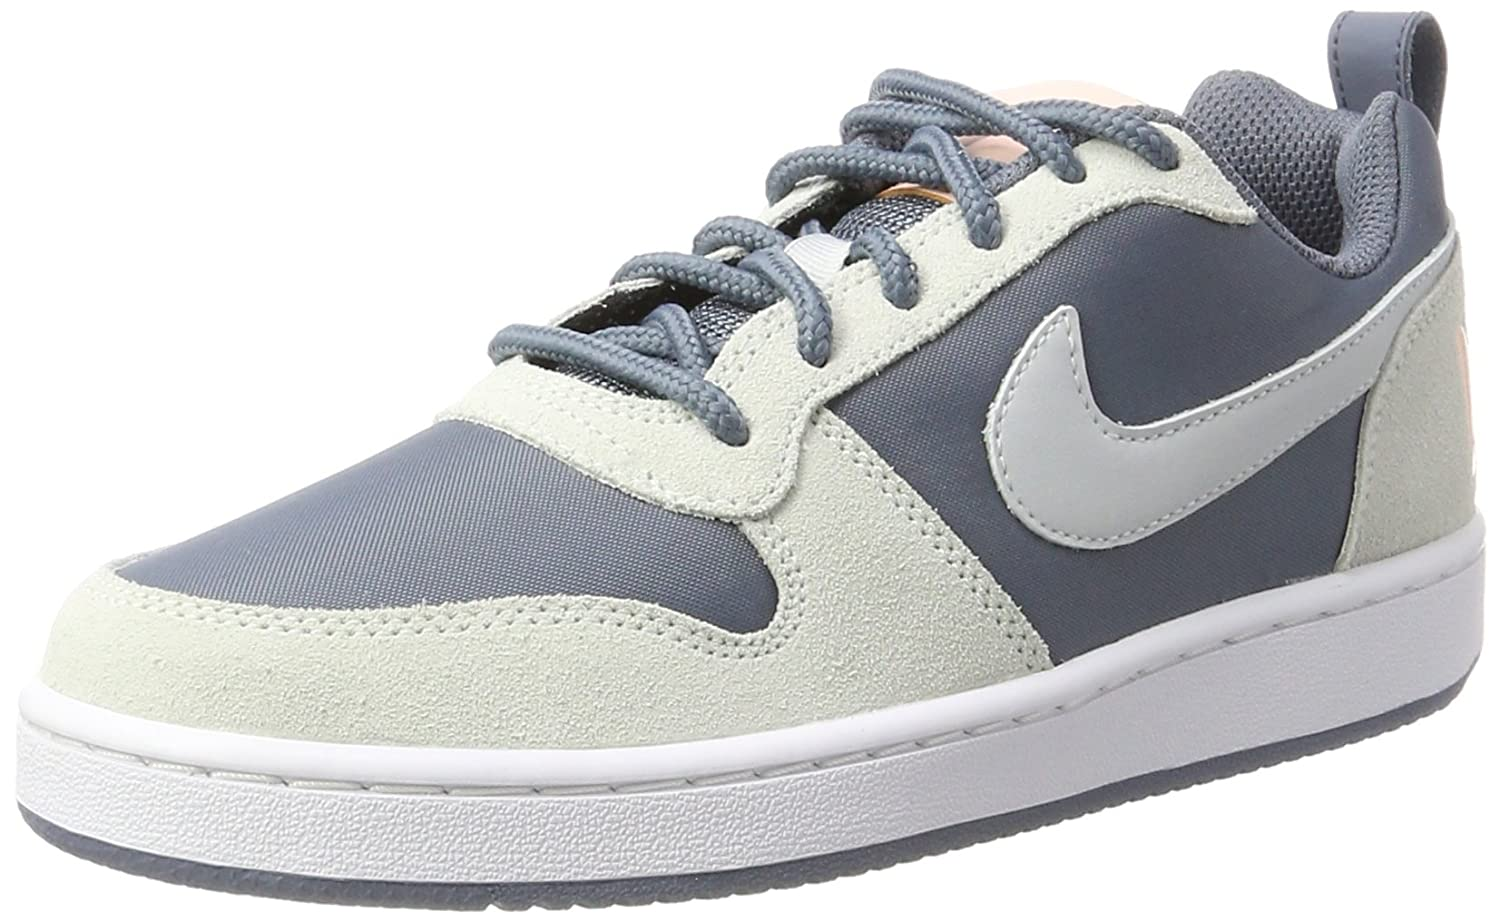 Nike W Court Borough Low Prem, Zapatillas de Gimnasia para Mujer 39 EU|Multicolor (Armory Blue/Pure Platinum/White/Sunset Tint)